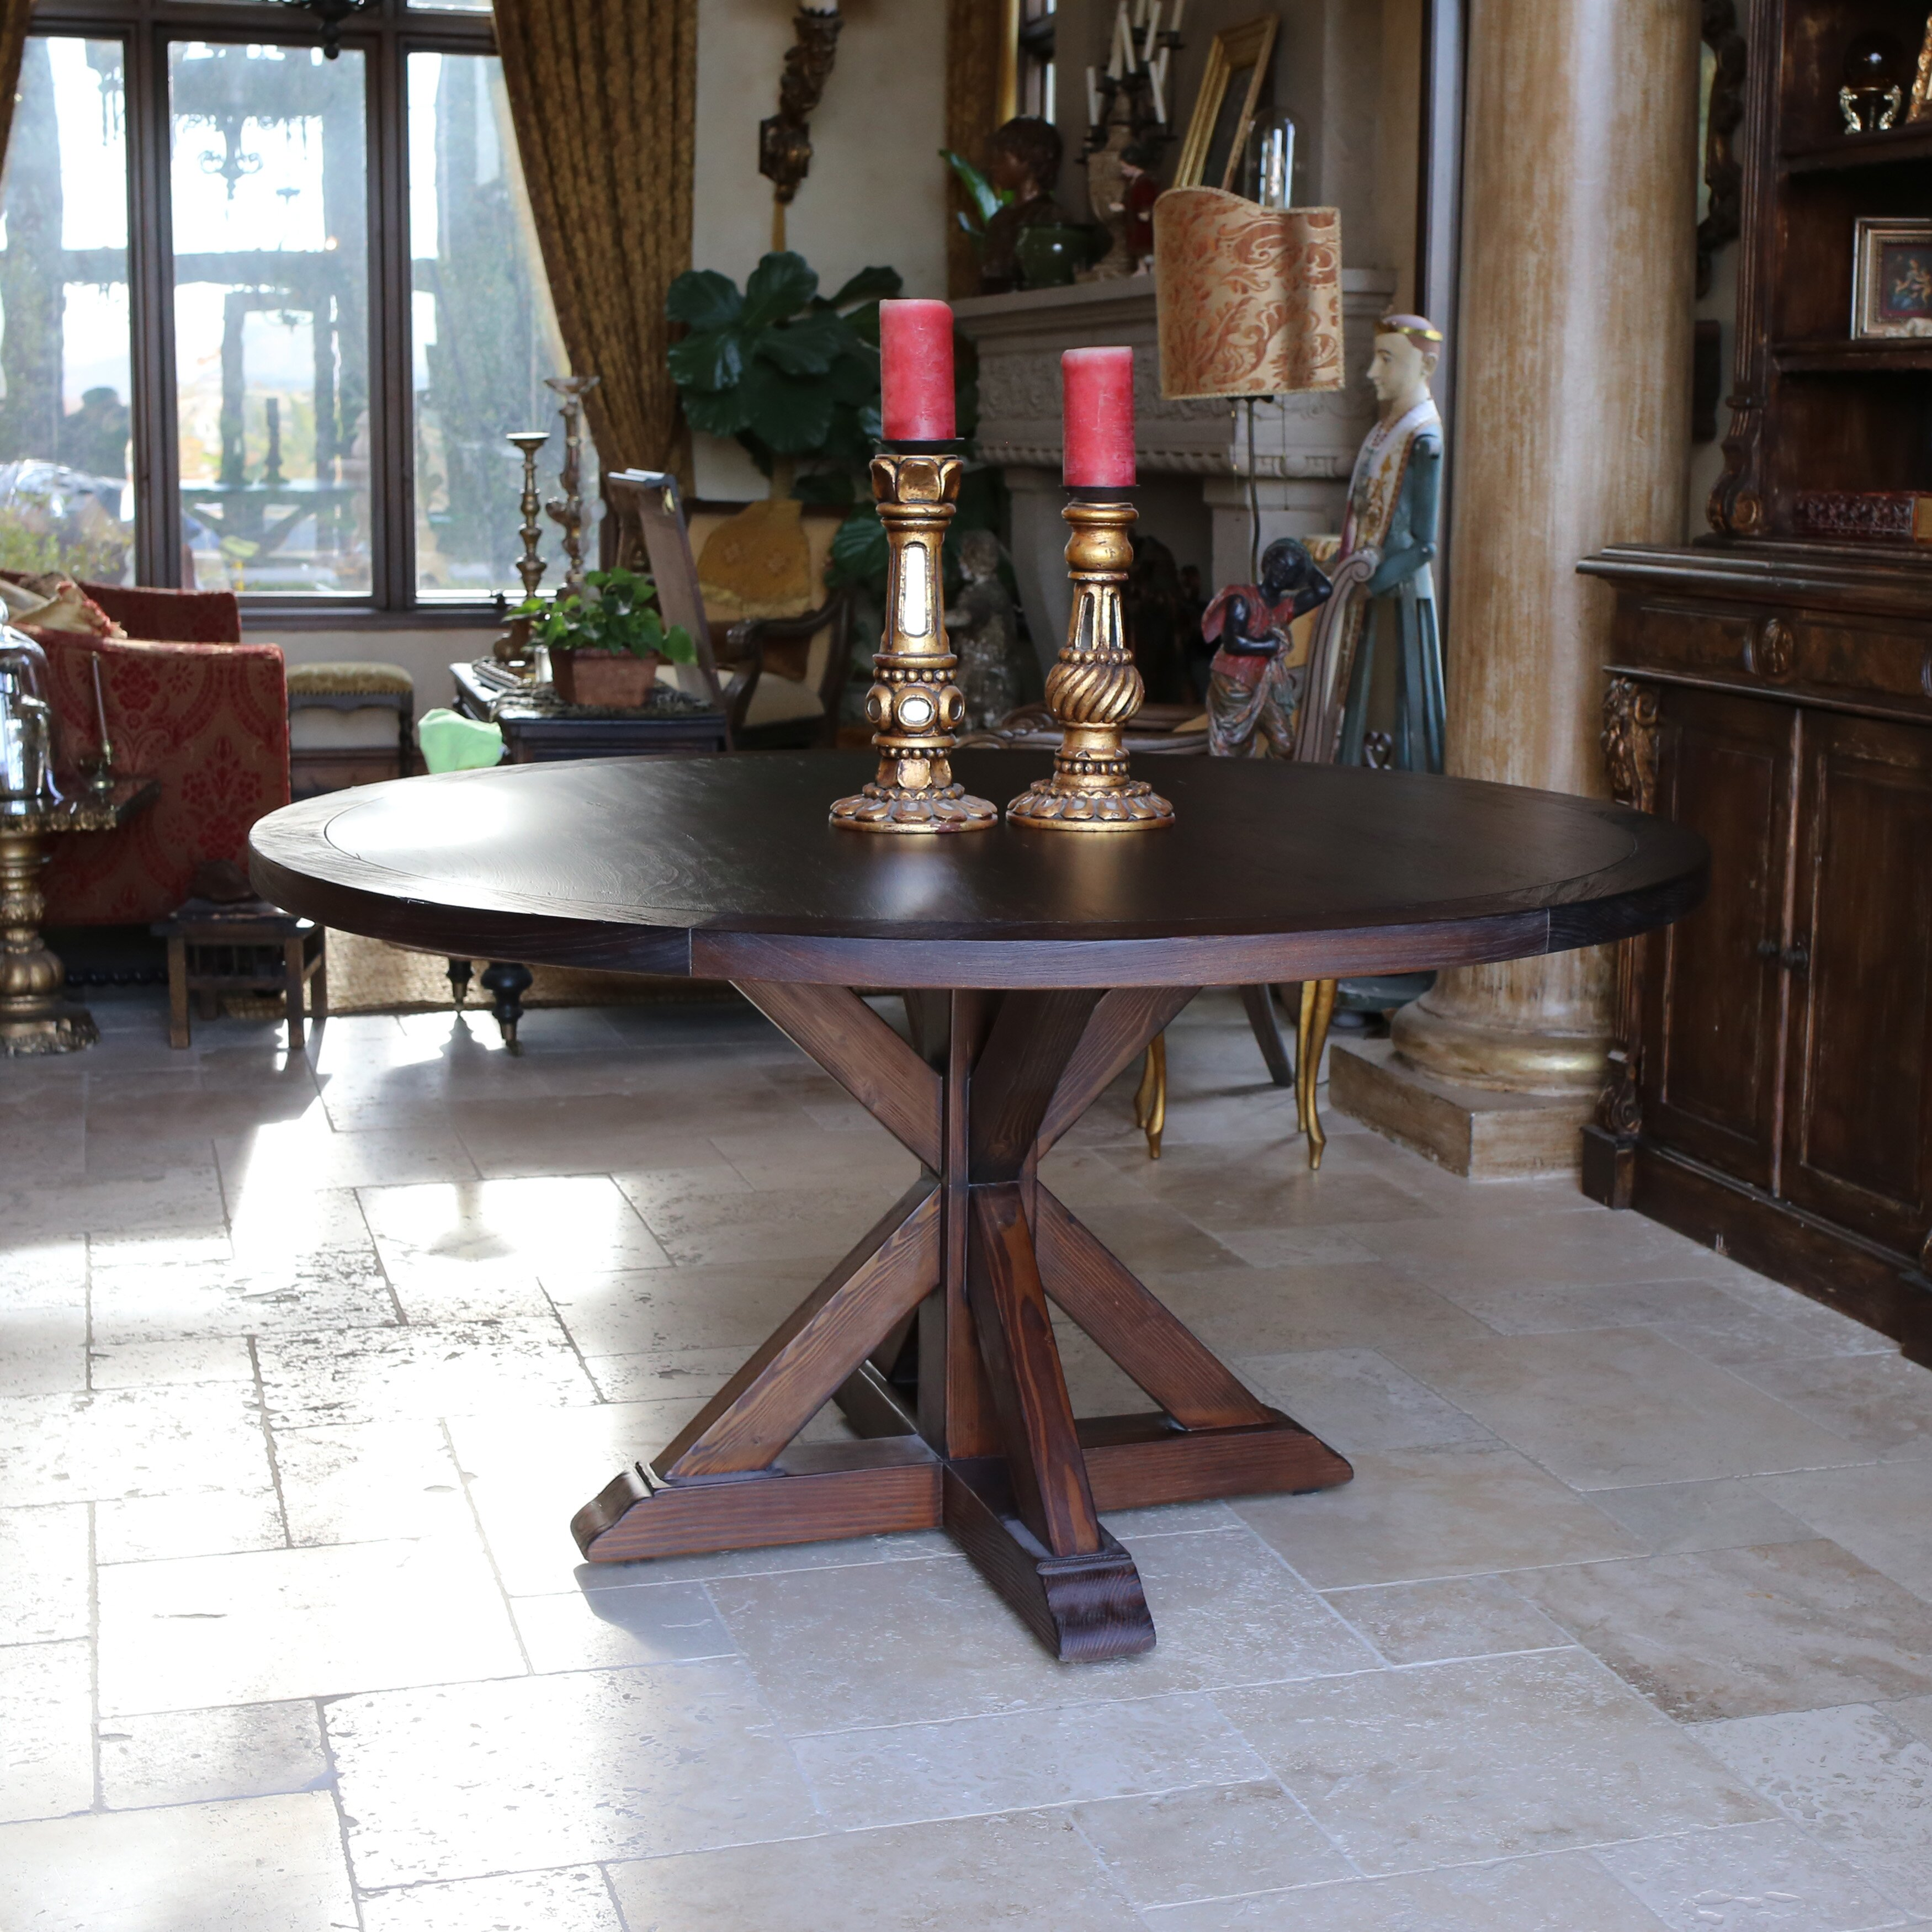 Reclaimed wood round dining table -  Kovet Hospitality Larue Reclaimed Wood Round Dining Table Walnut Stainless Dining Table